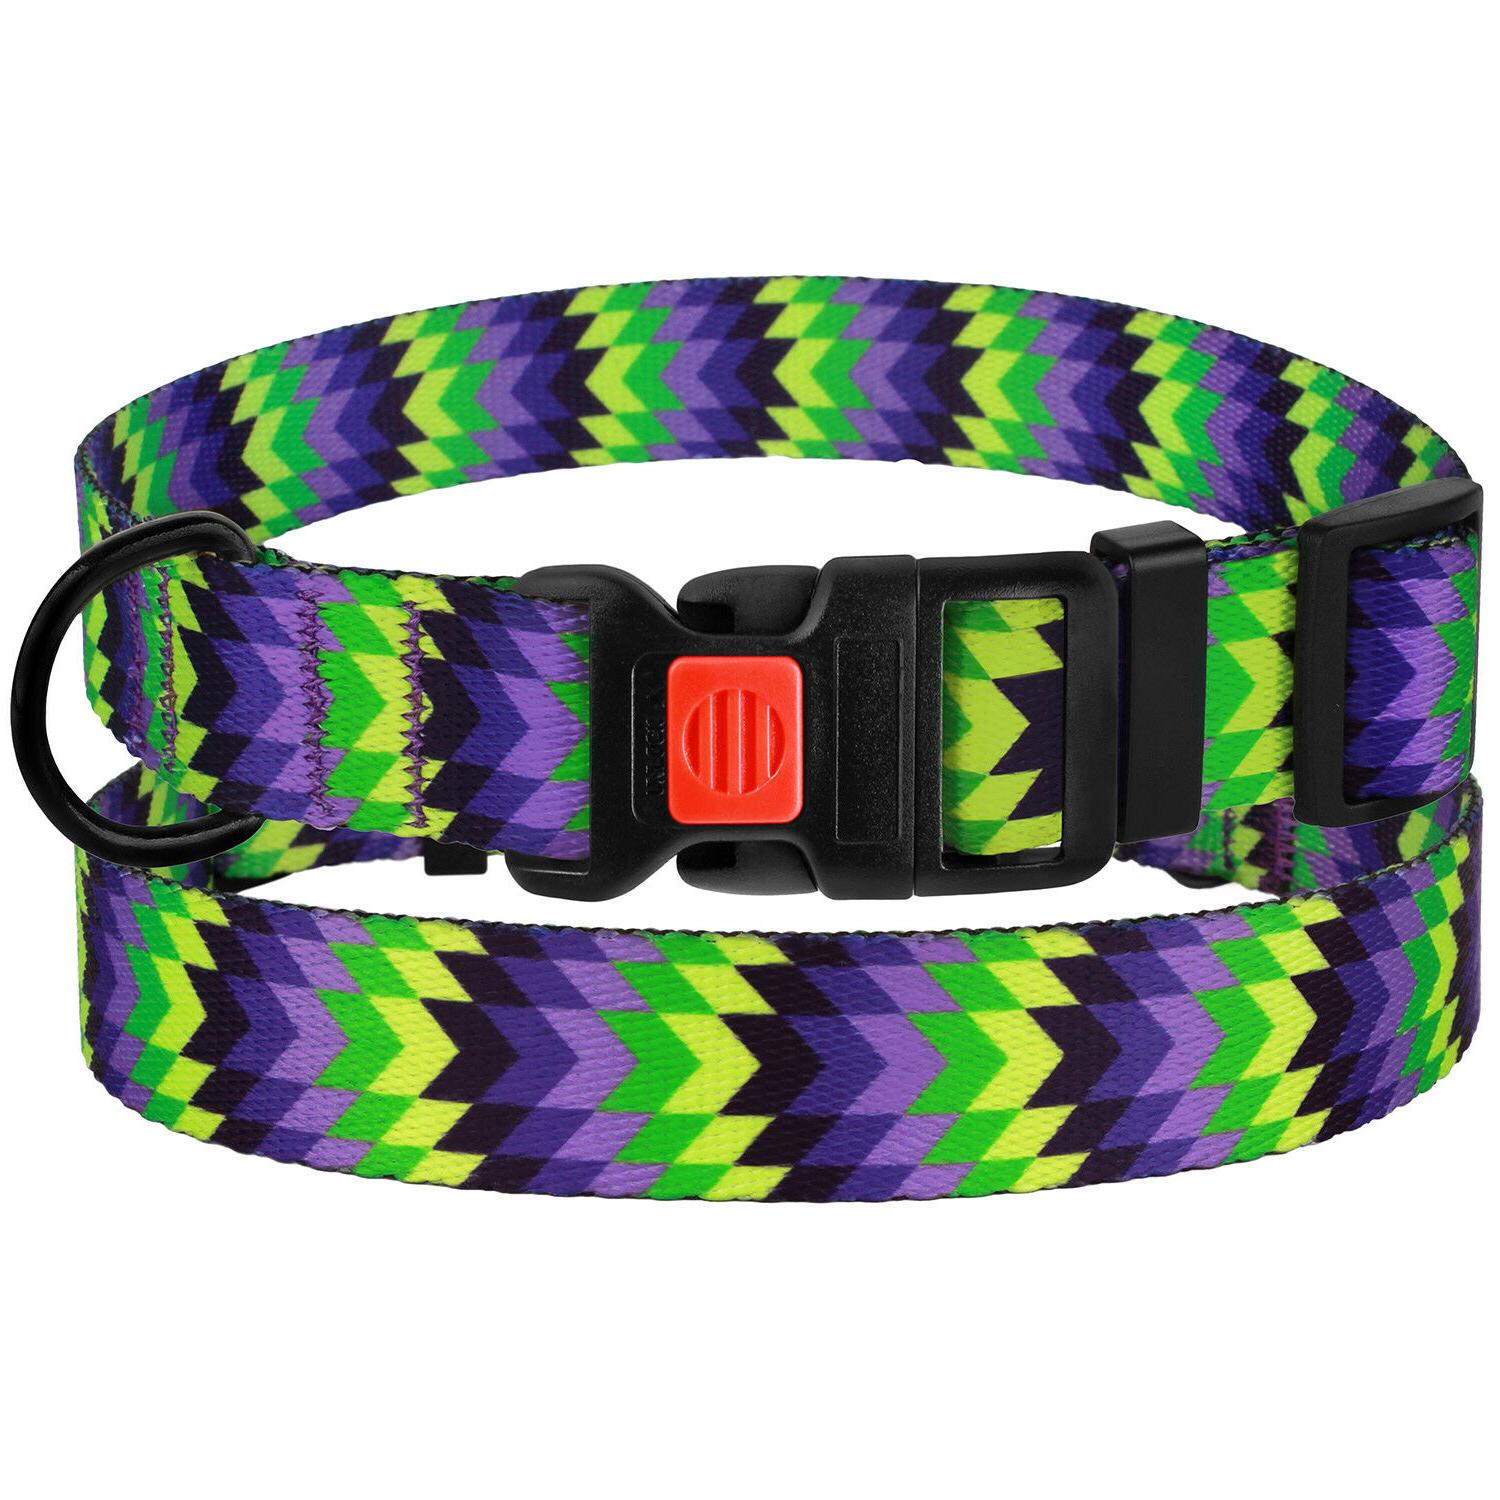 Adjustable Buckle Collars Dogs L XL